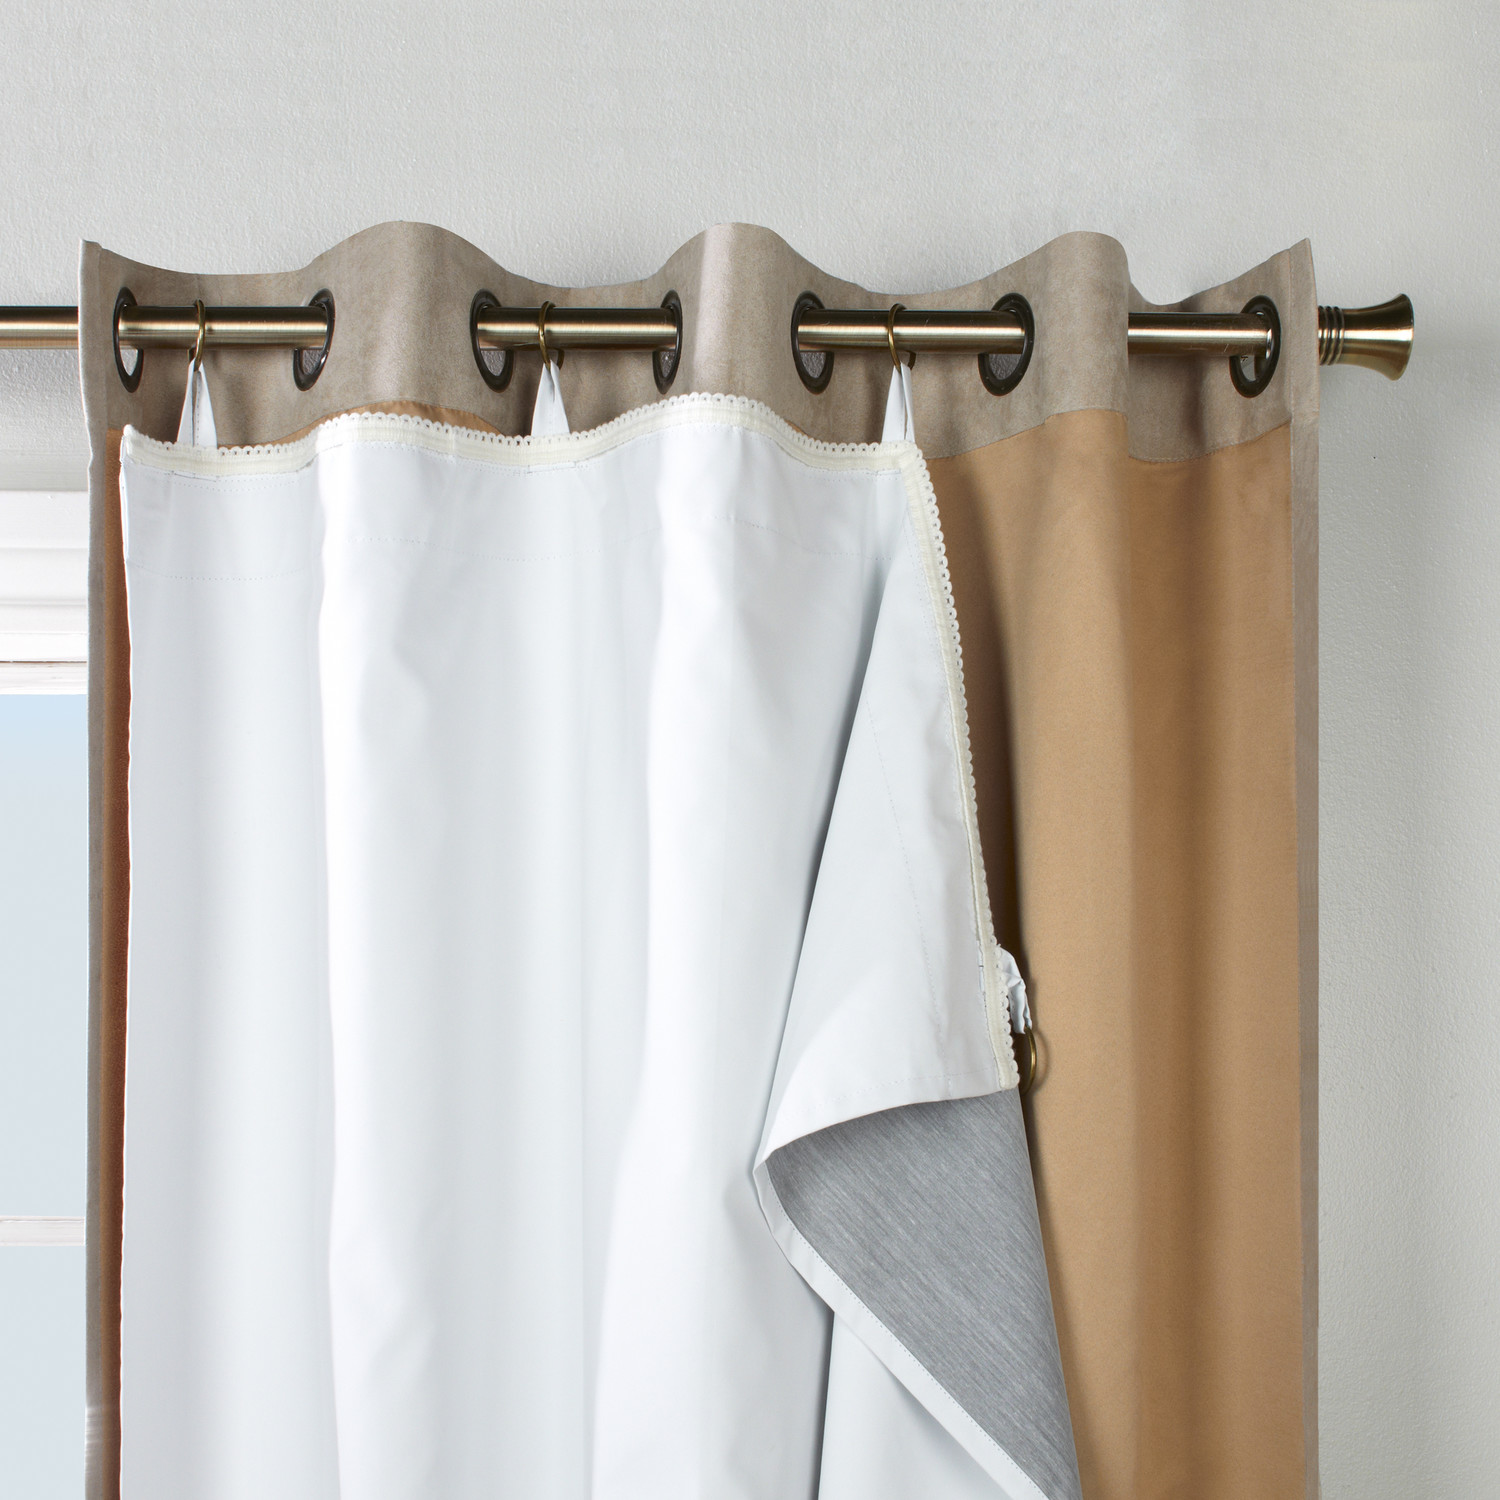 Fabric Shower Curtains